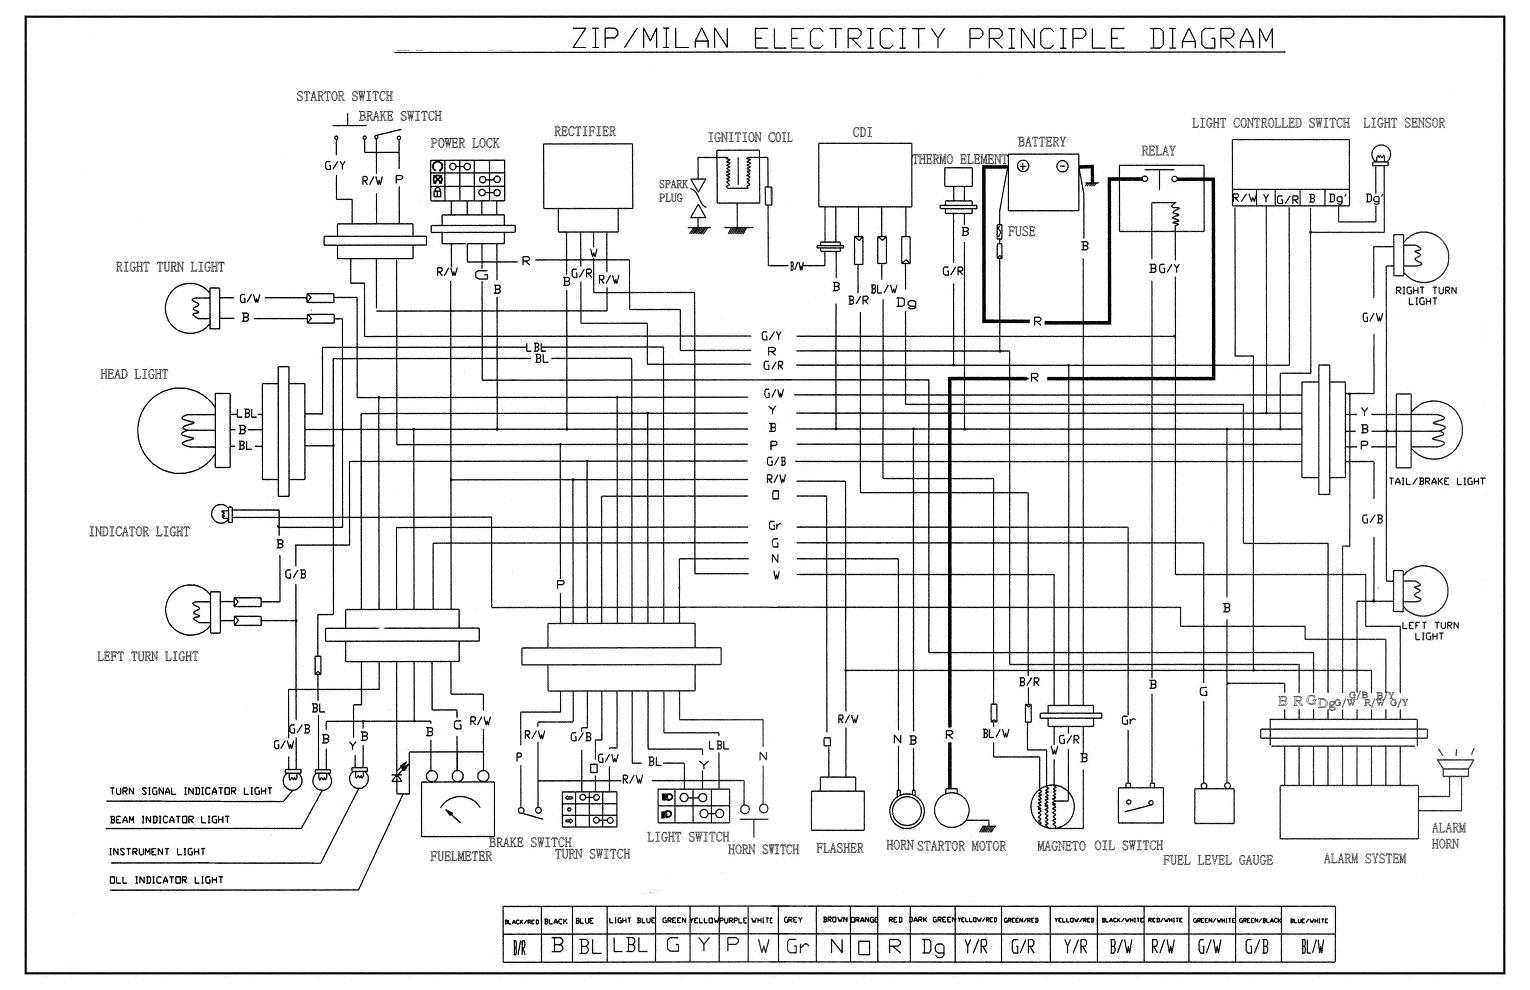 Mesmerizing Suzuki Gt380 Wiring Diagram Contemporary - Best Image ...